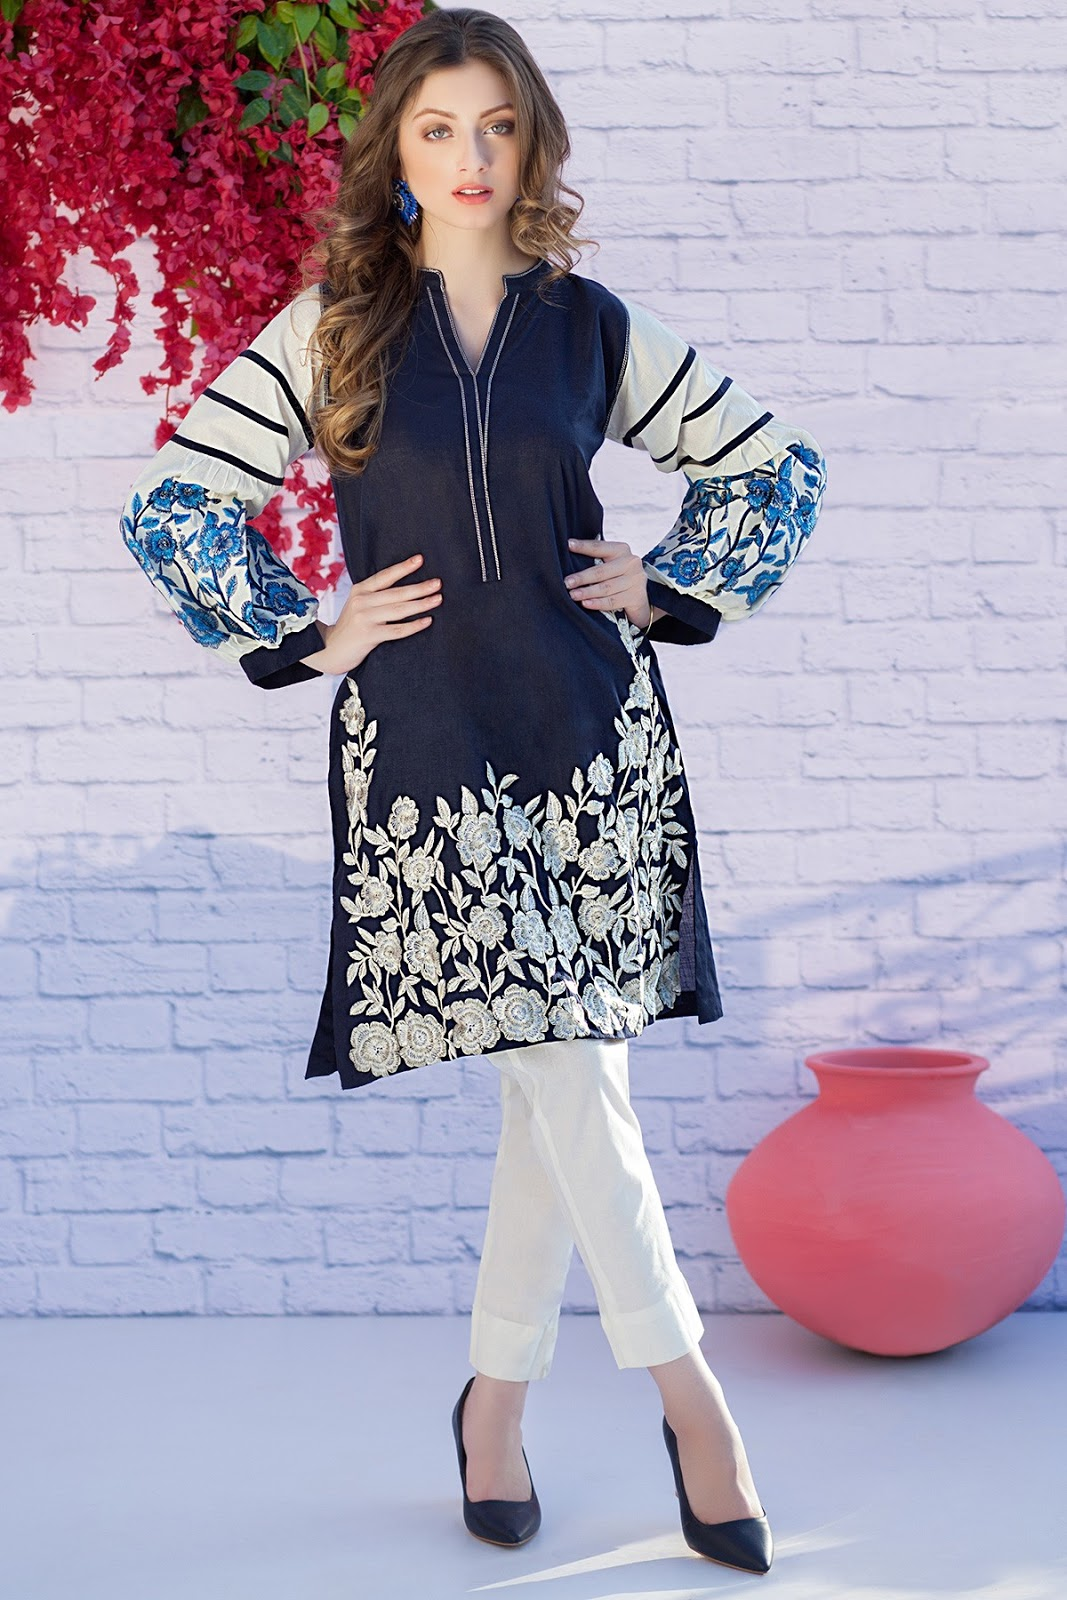 9fa092caf5 Very summery color & intricate embroidery with raglan sleeves makes this  dress standout. at February 17, 2018